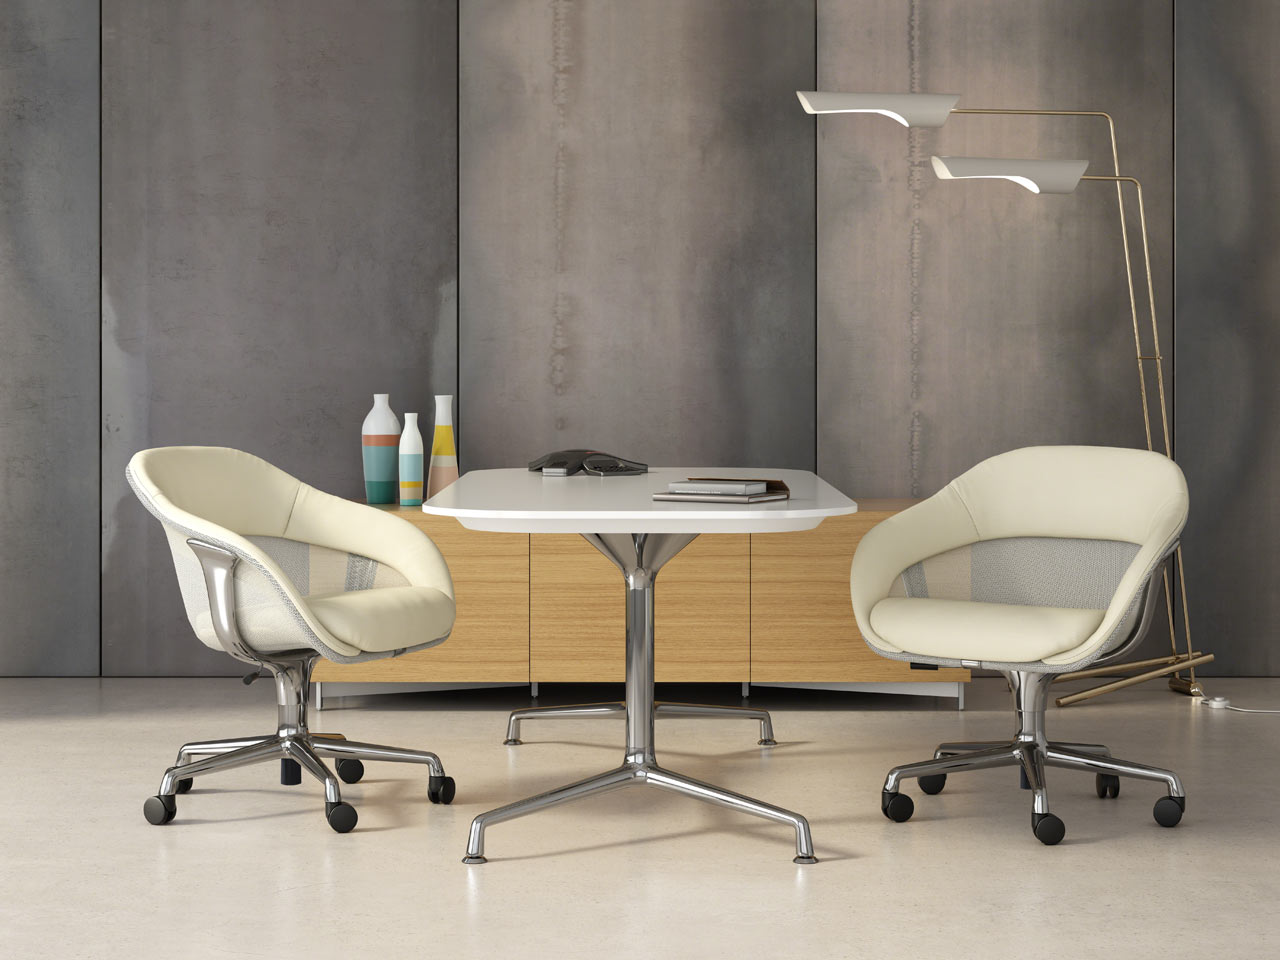 Coalesse Updates the Lounge-Inspired SW_1 Seating Collection